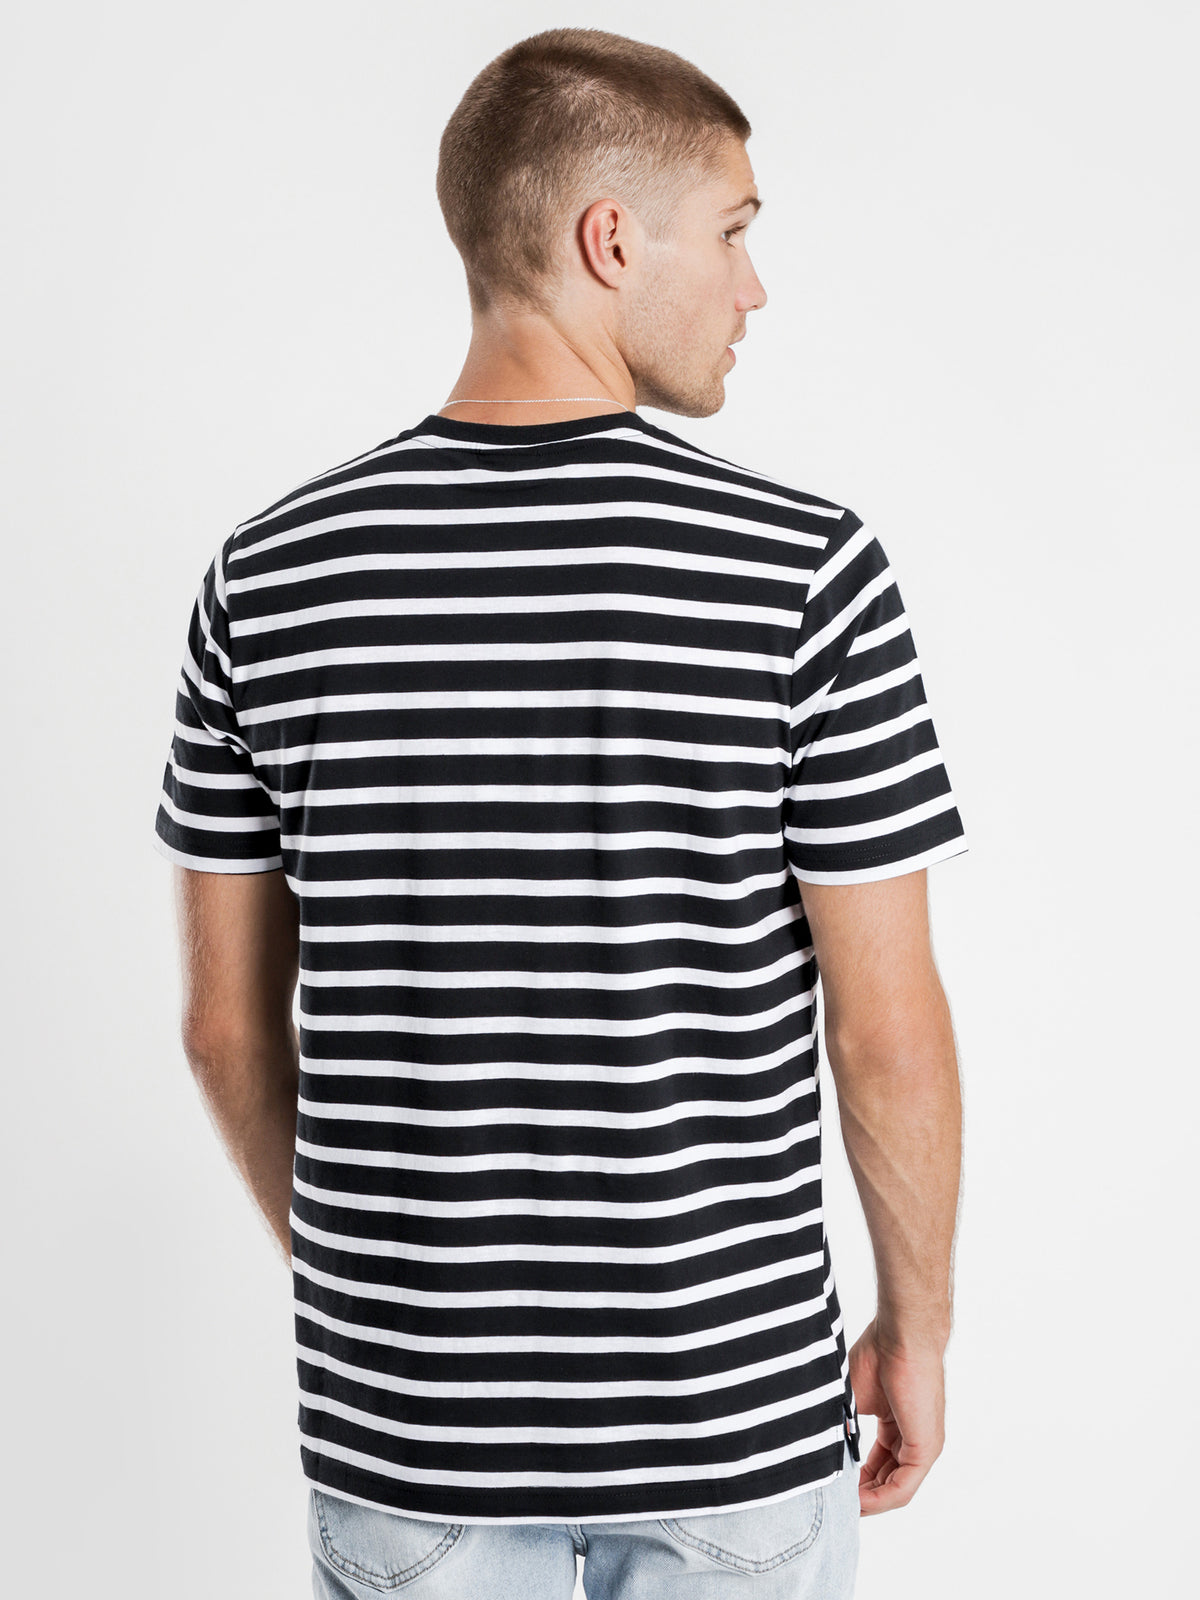 Sailo T-Shirt in White & Black